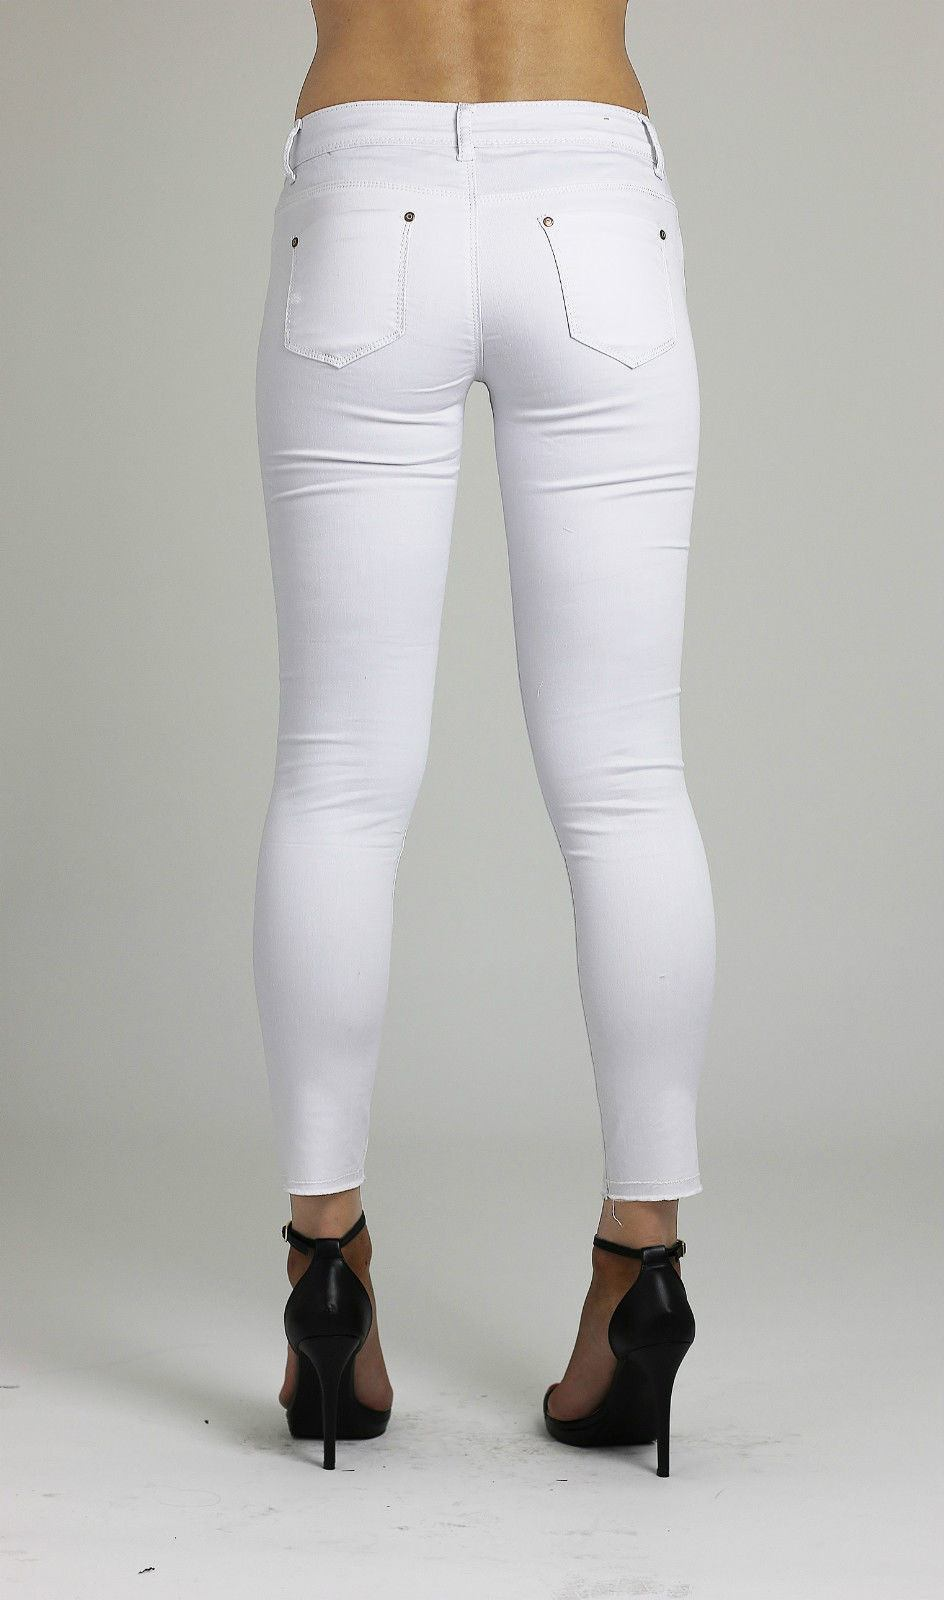 """A comfortable & flattering fit every time, LTS tall skinny jeans are perfect for the women blessed with longer legs. Available in 34"""" to 38"""" inseams. jeans - 1 for £55, 2 for £75, 3 for £"""